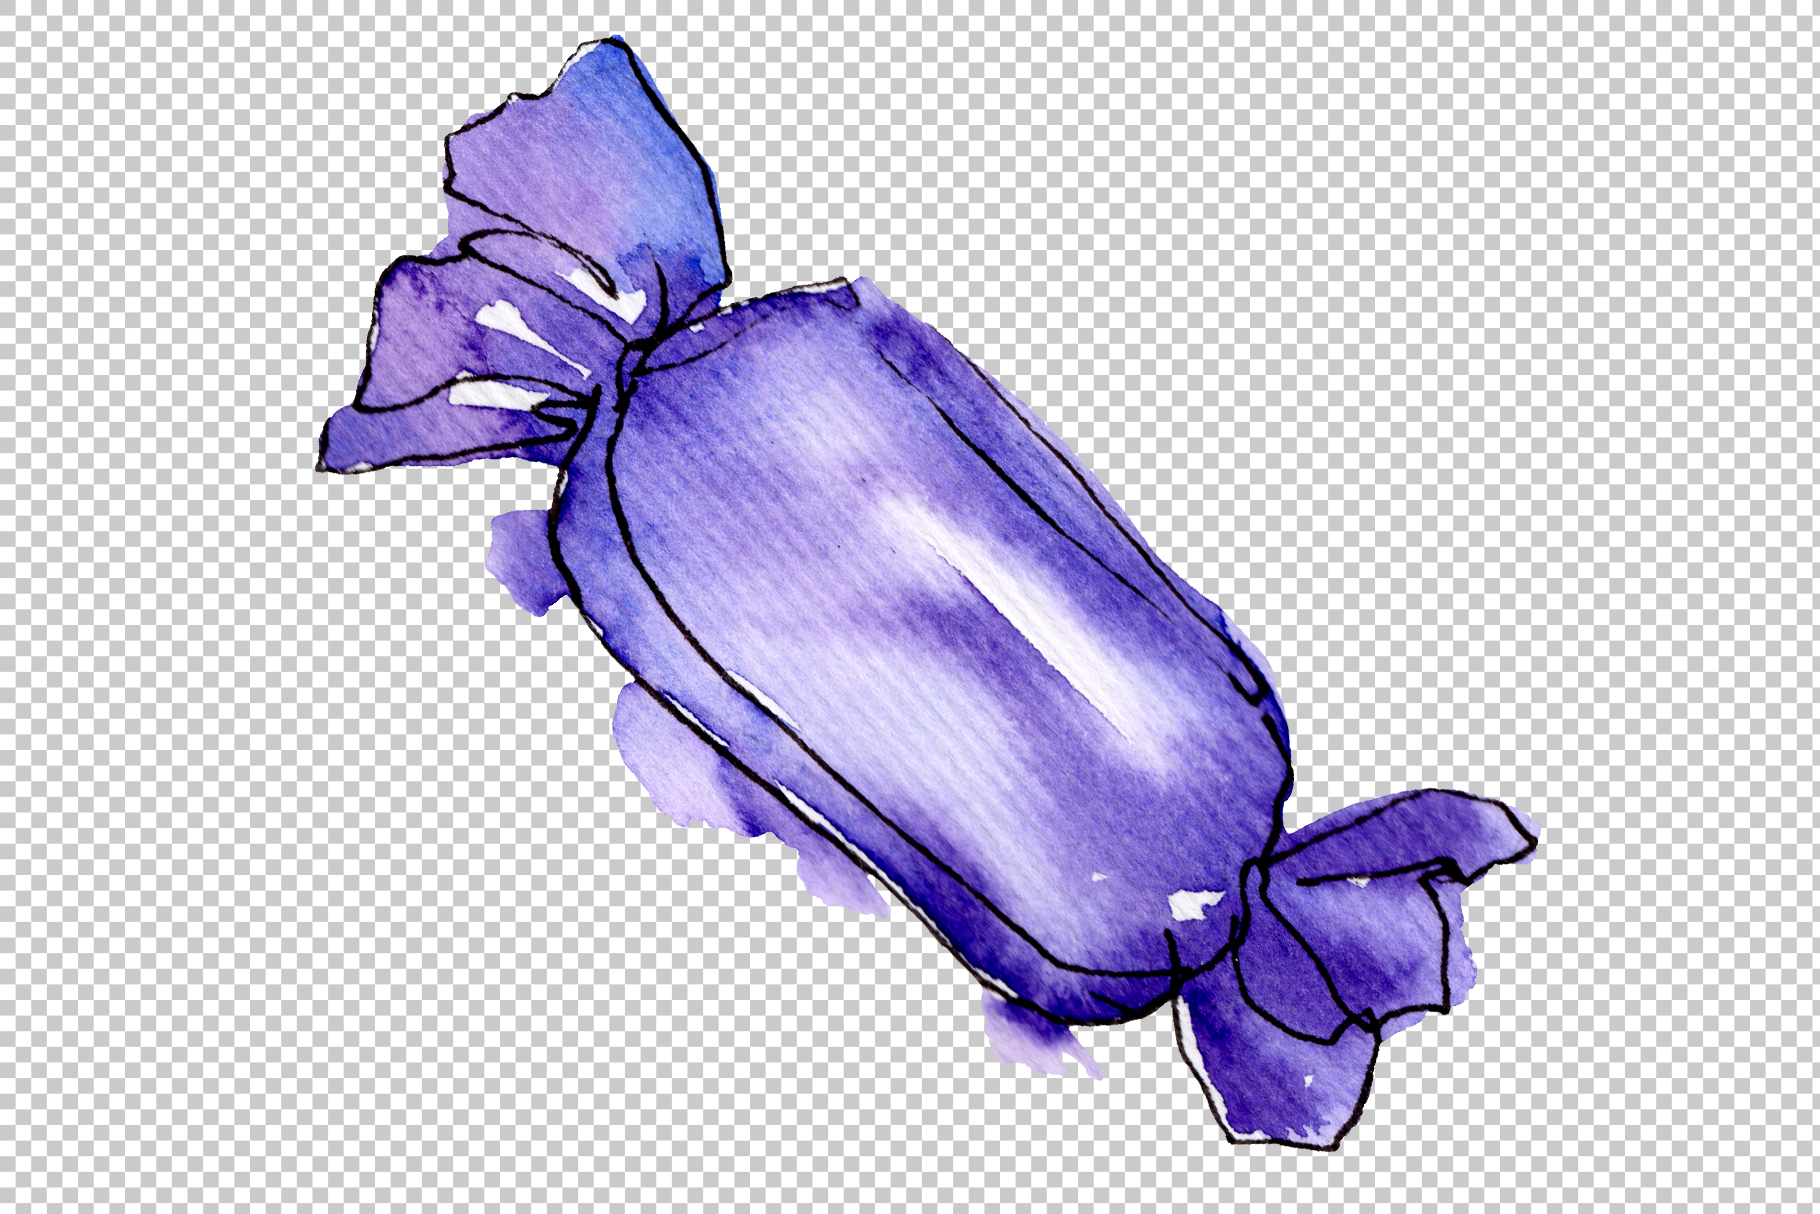 Candies aramel Watercolor png example image 11